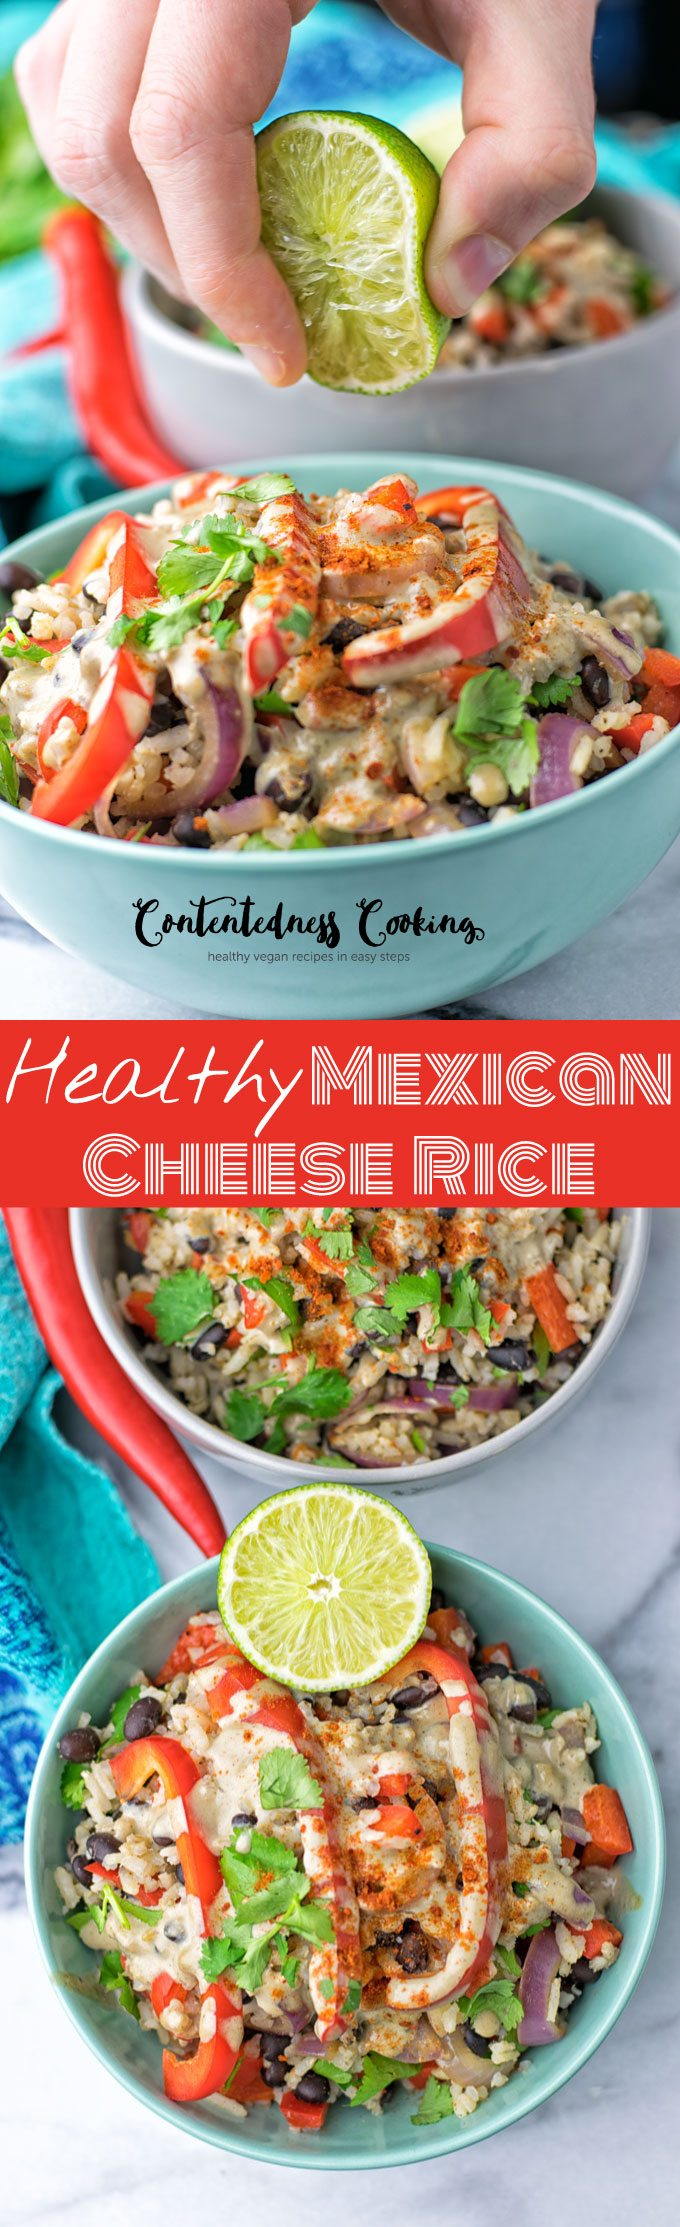 Healthy Mexican Cheese Rice | #vegan #glutenfree #contentednesscooking